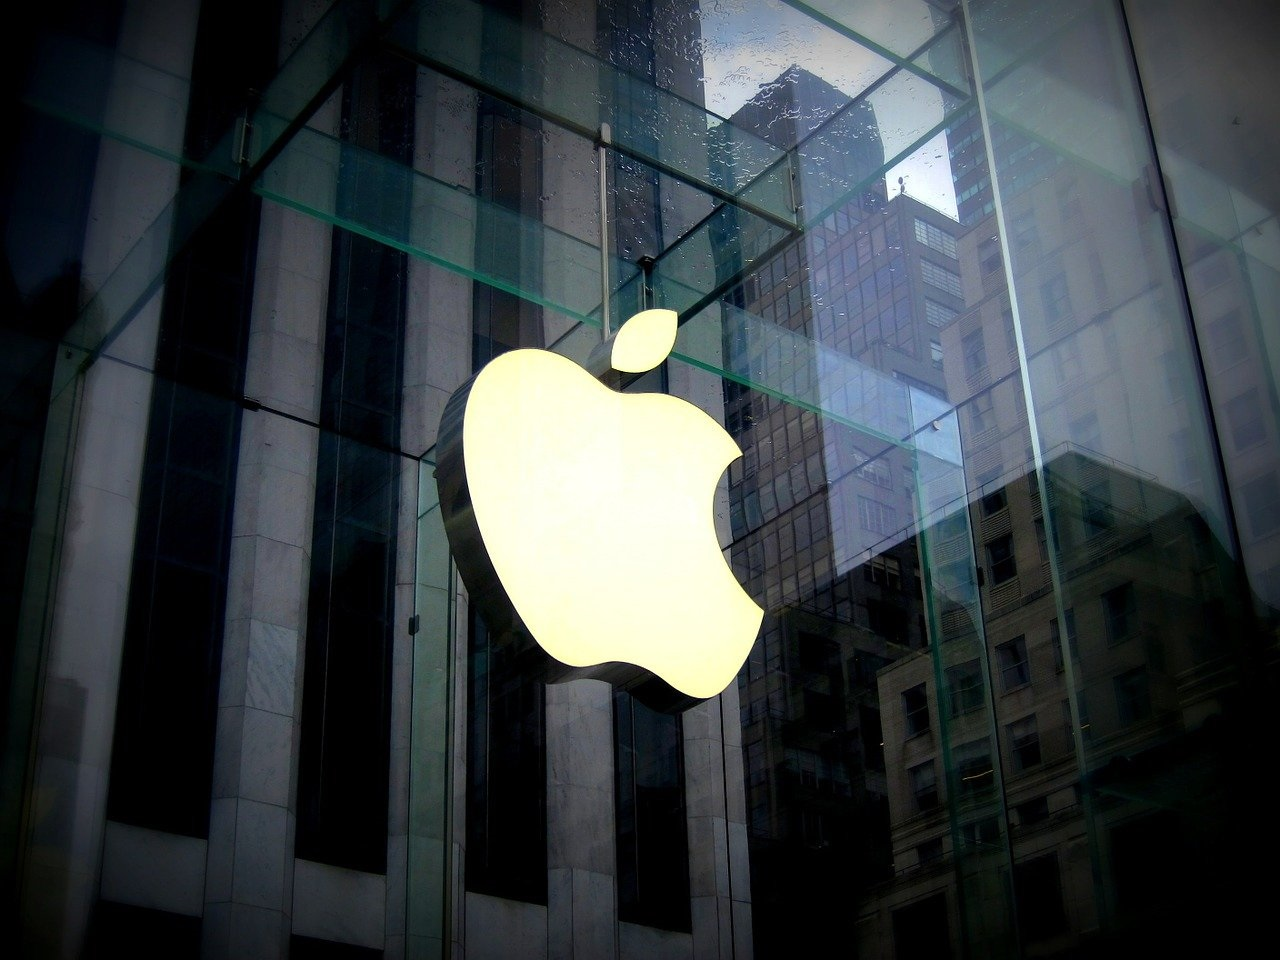 Apple Inc (NASDAQ: AAPL) Gets Caught Up in Illegal Labor Allegations Involving Forced Uigur Muslim Workers